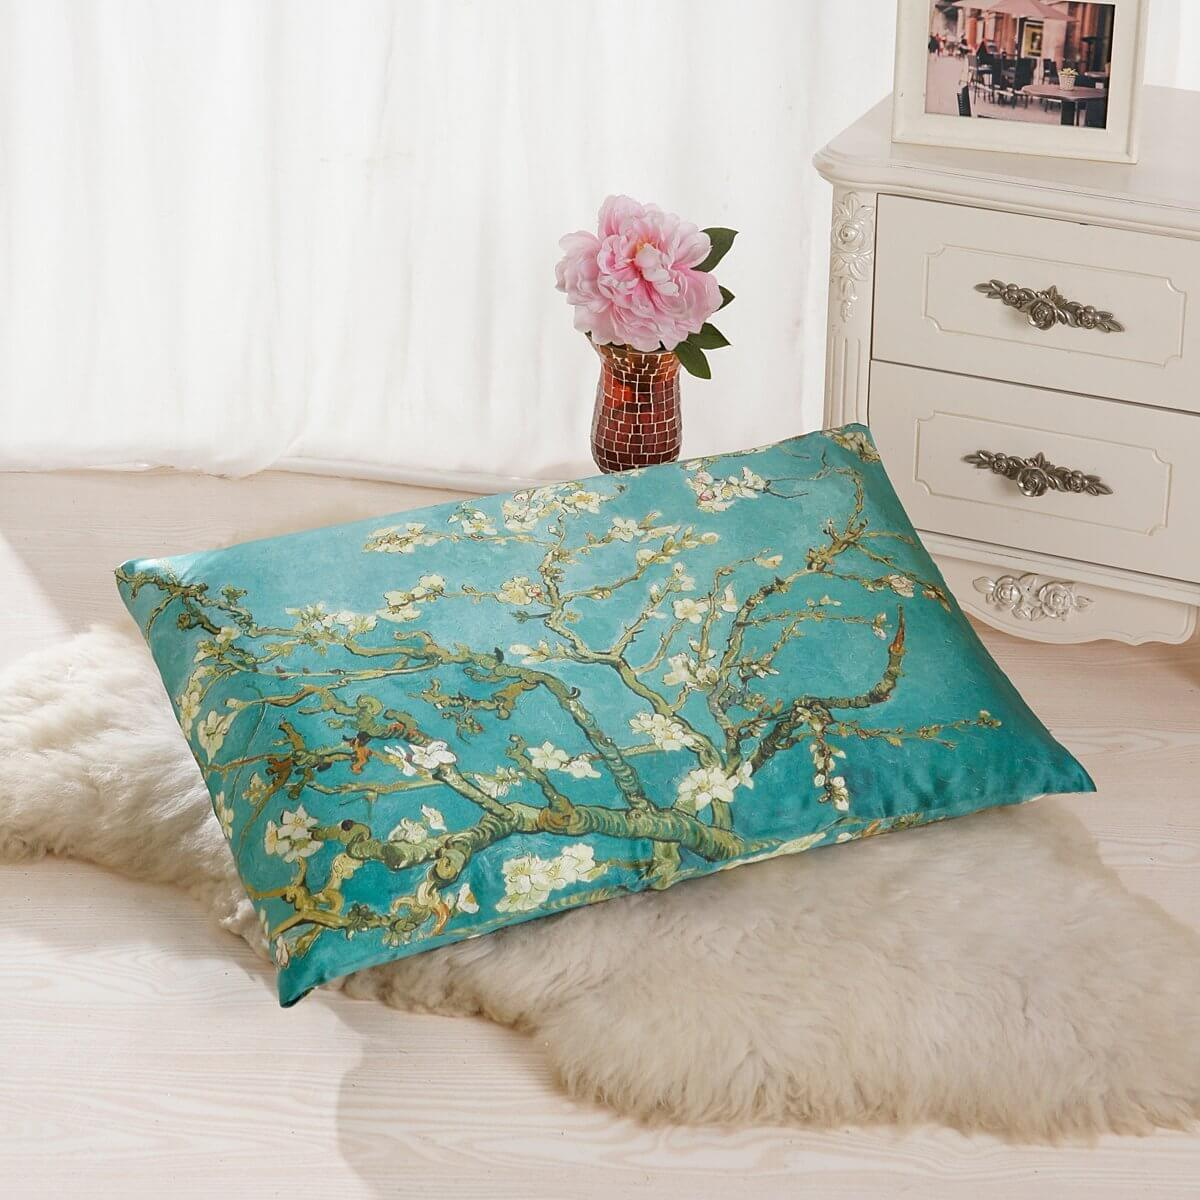 A Silk Pillow Case to Brighten Your Sleeping Space